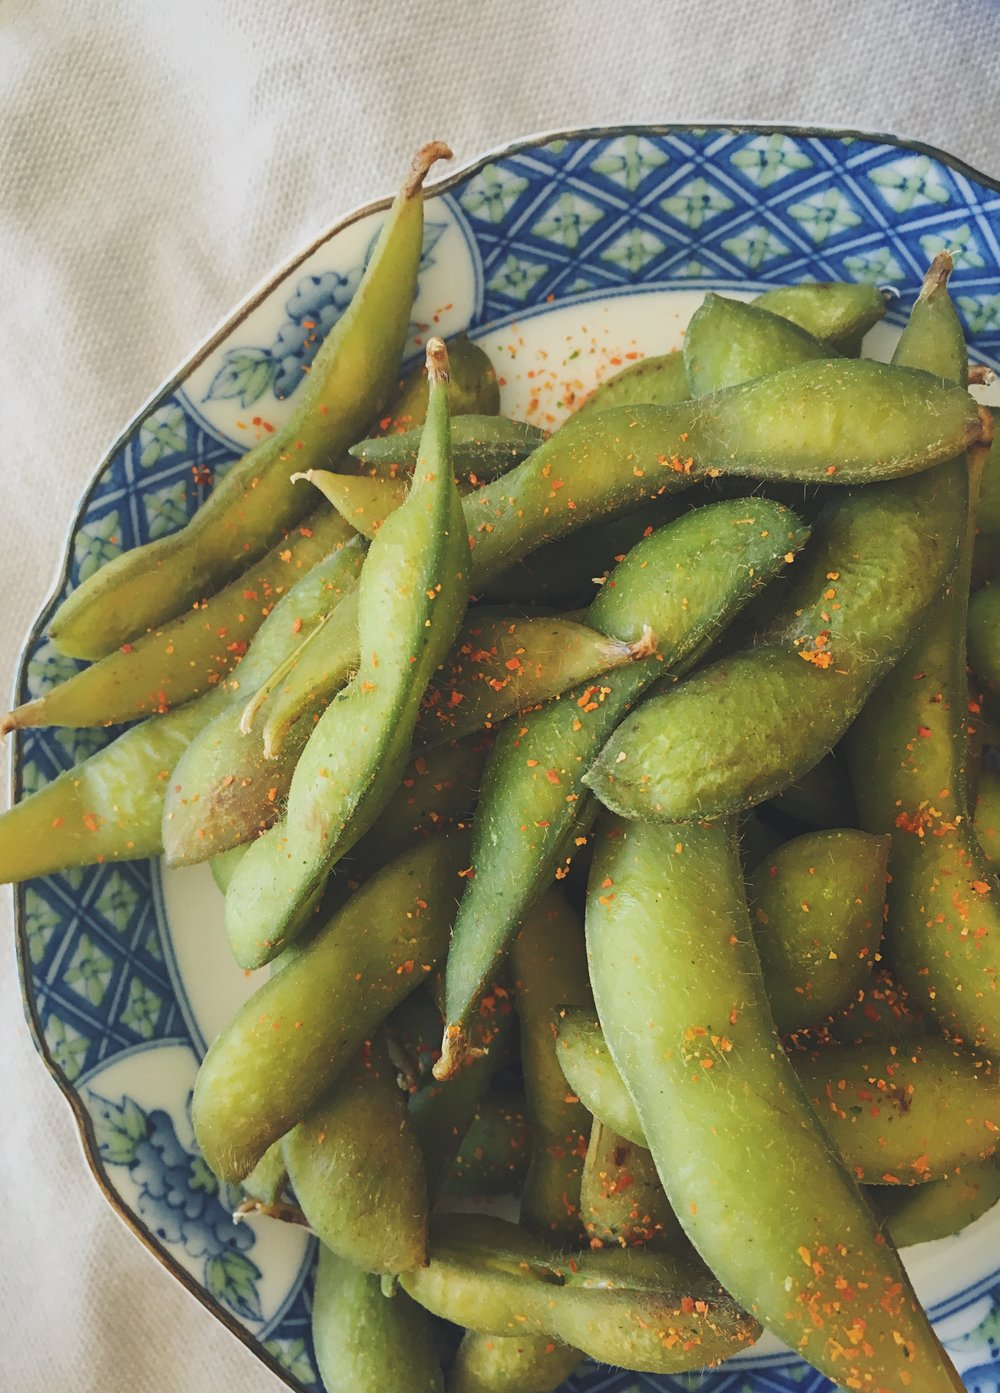 Edamame beans sprinkled with five spice powder and salt = game changer.